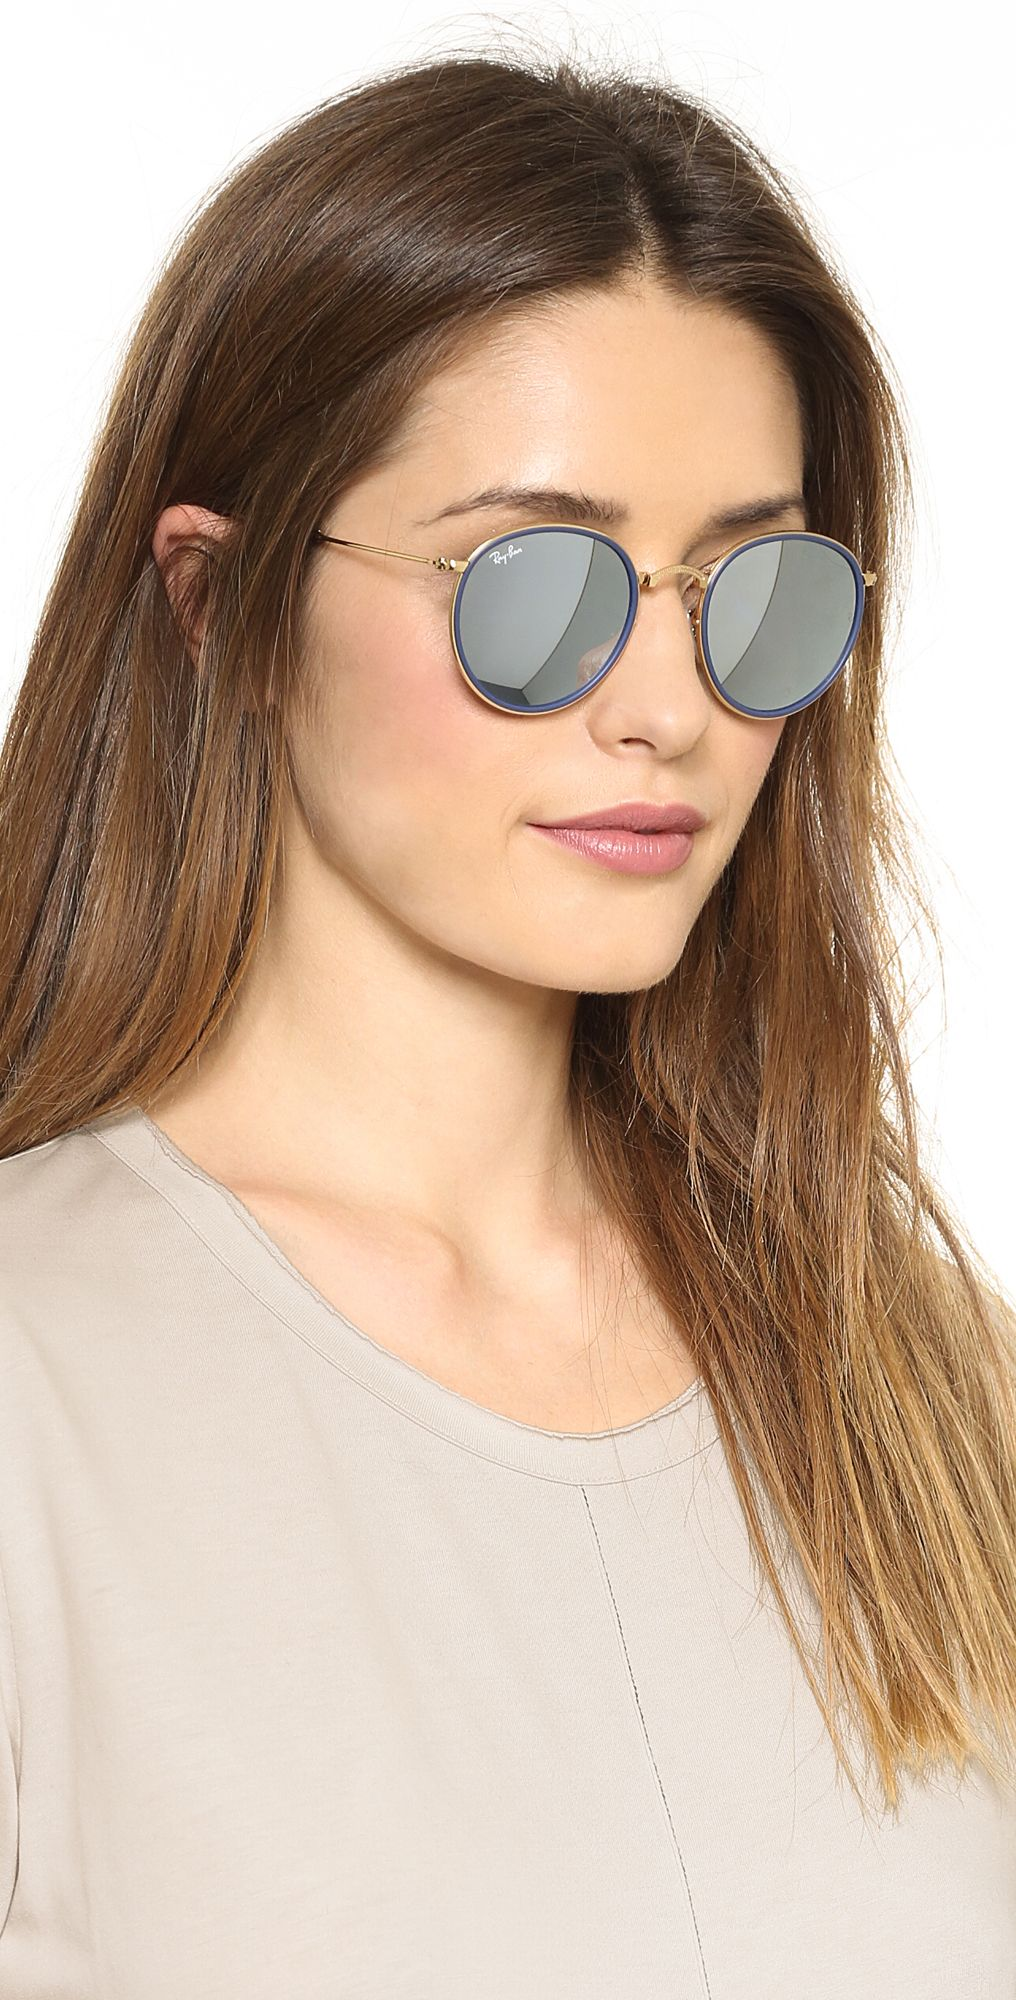 Rb3517 Mirrored Round Folding Icon Sunglasses Ray Ban